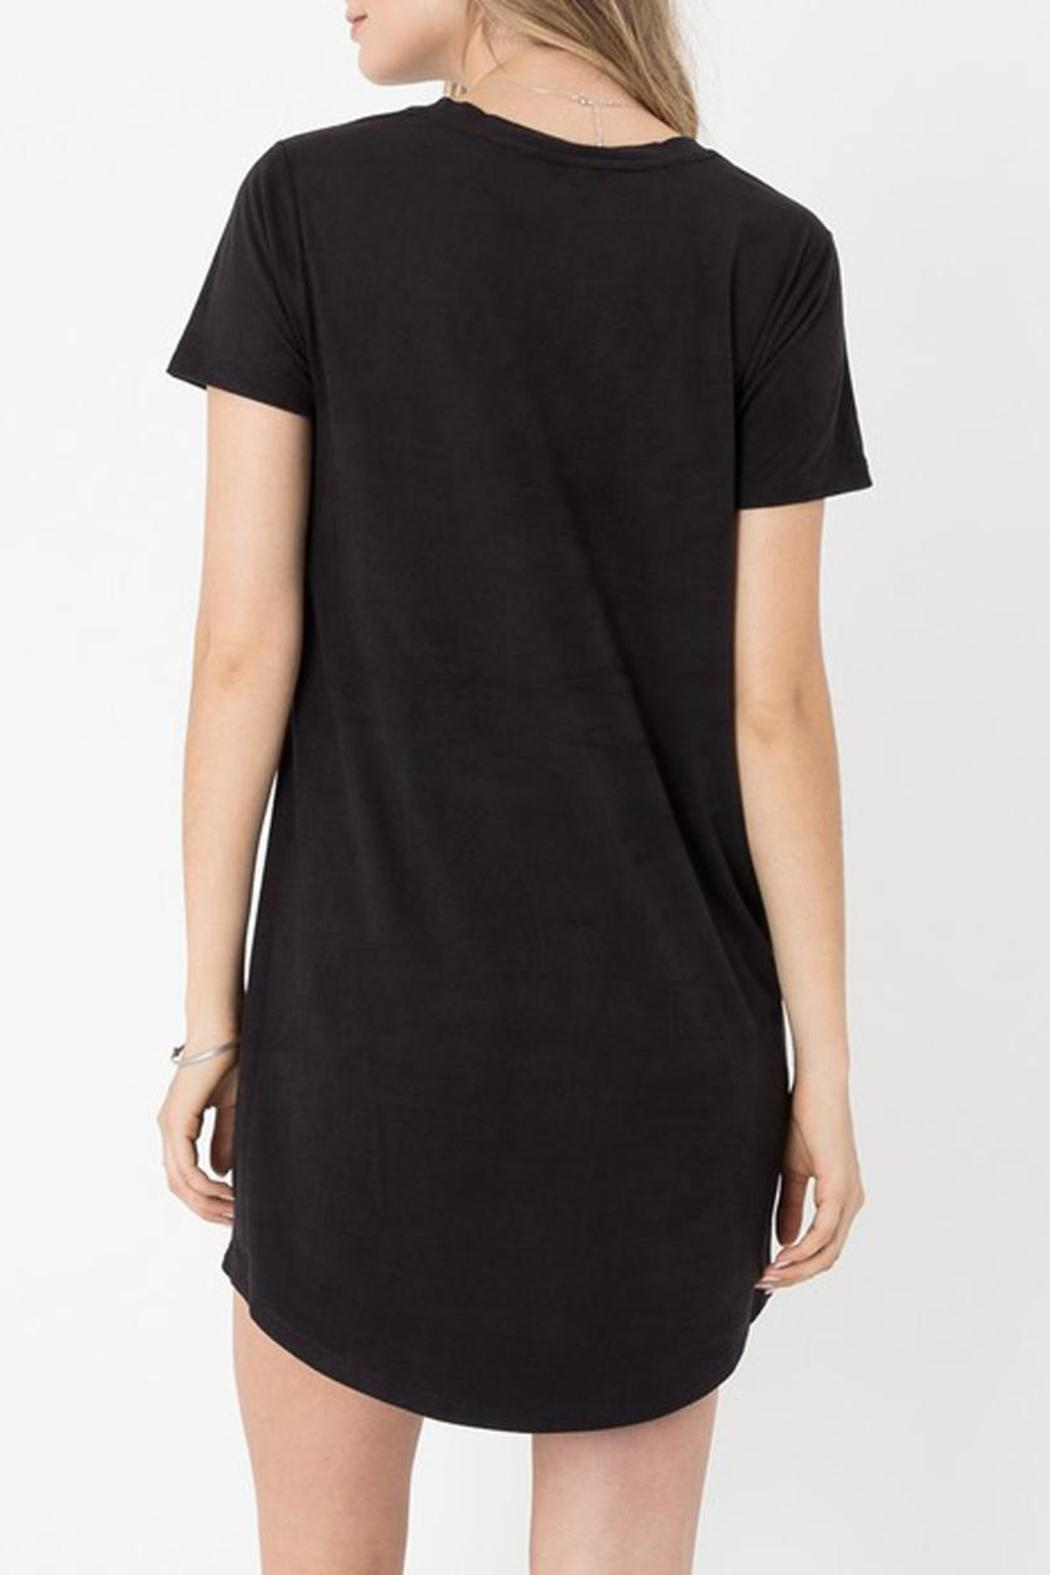 z supply Suede Dress - Front Full Image